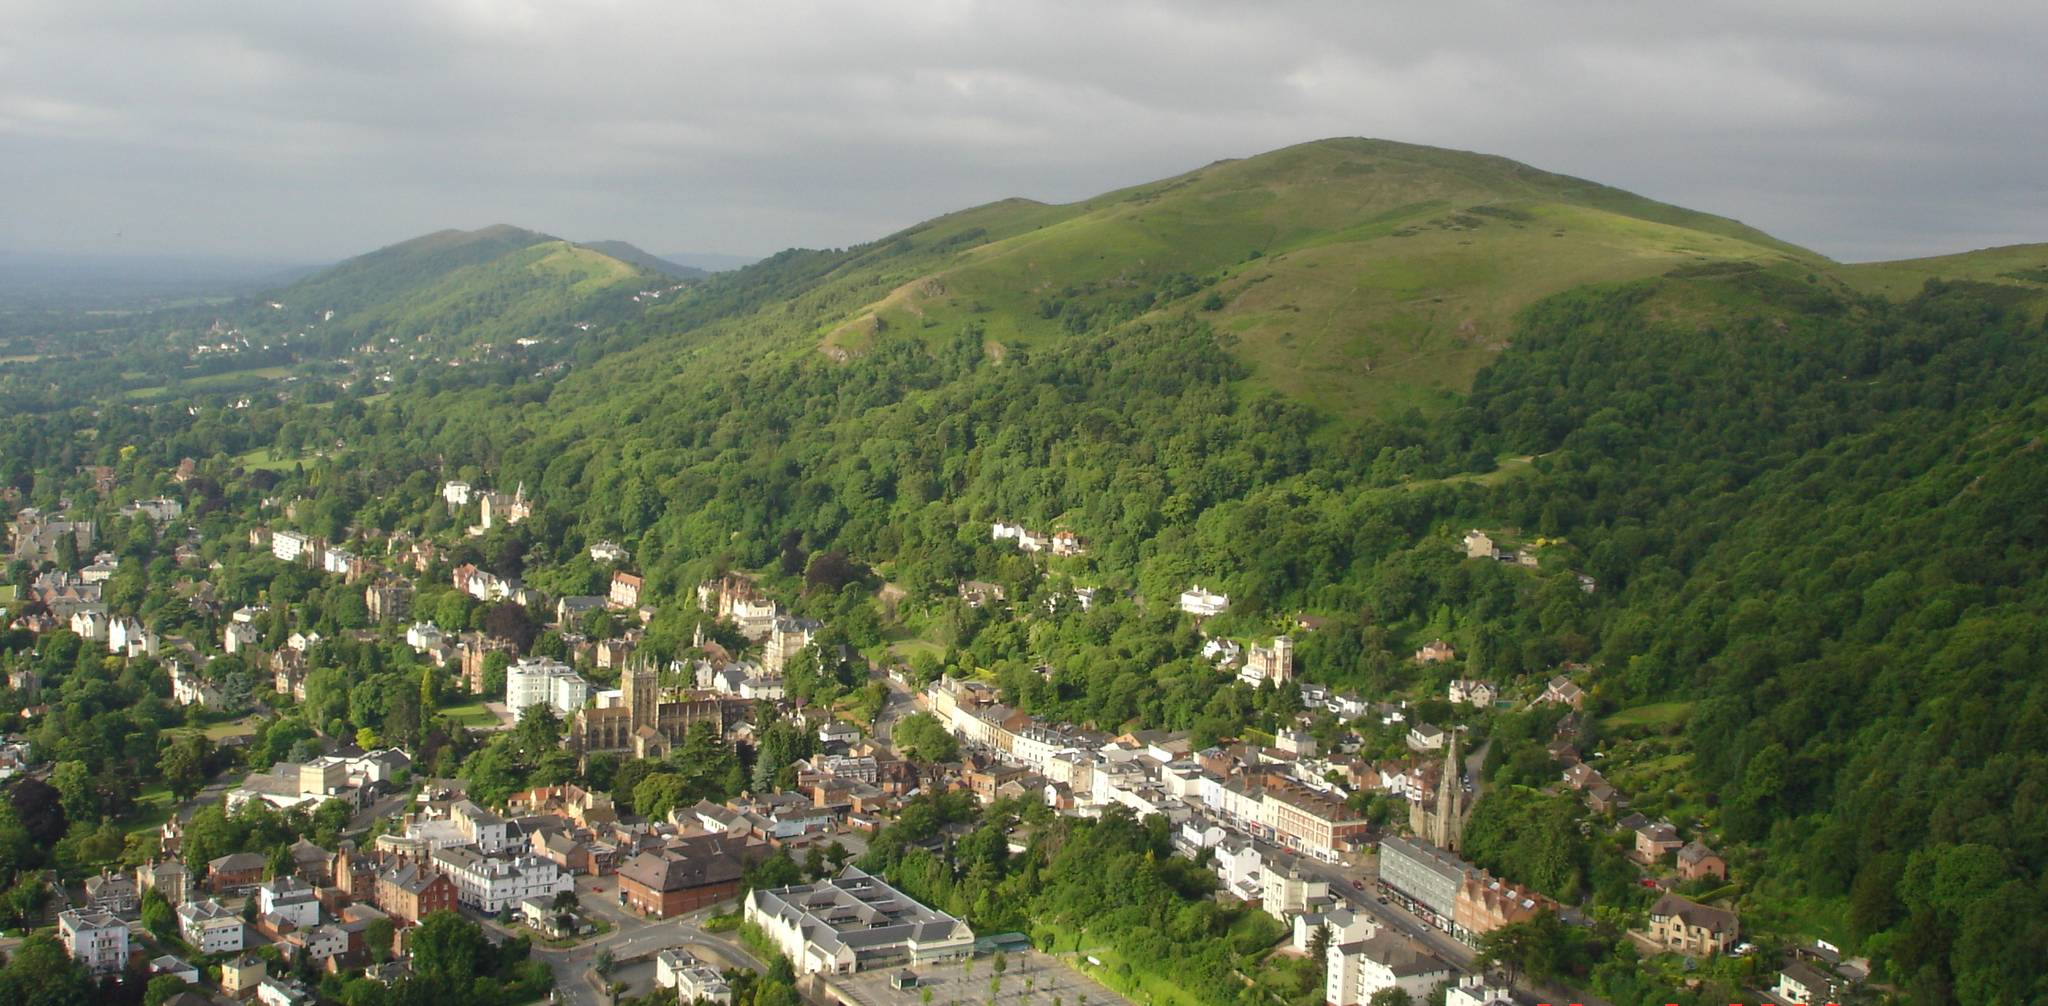 Walks in the Malvern Hills: A Pictorial Guide to the Malvern Hills series - Materialize is a freemium WordPress theme developed by myThem.es